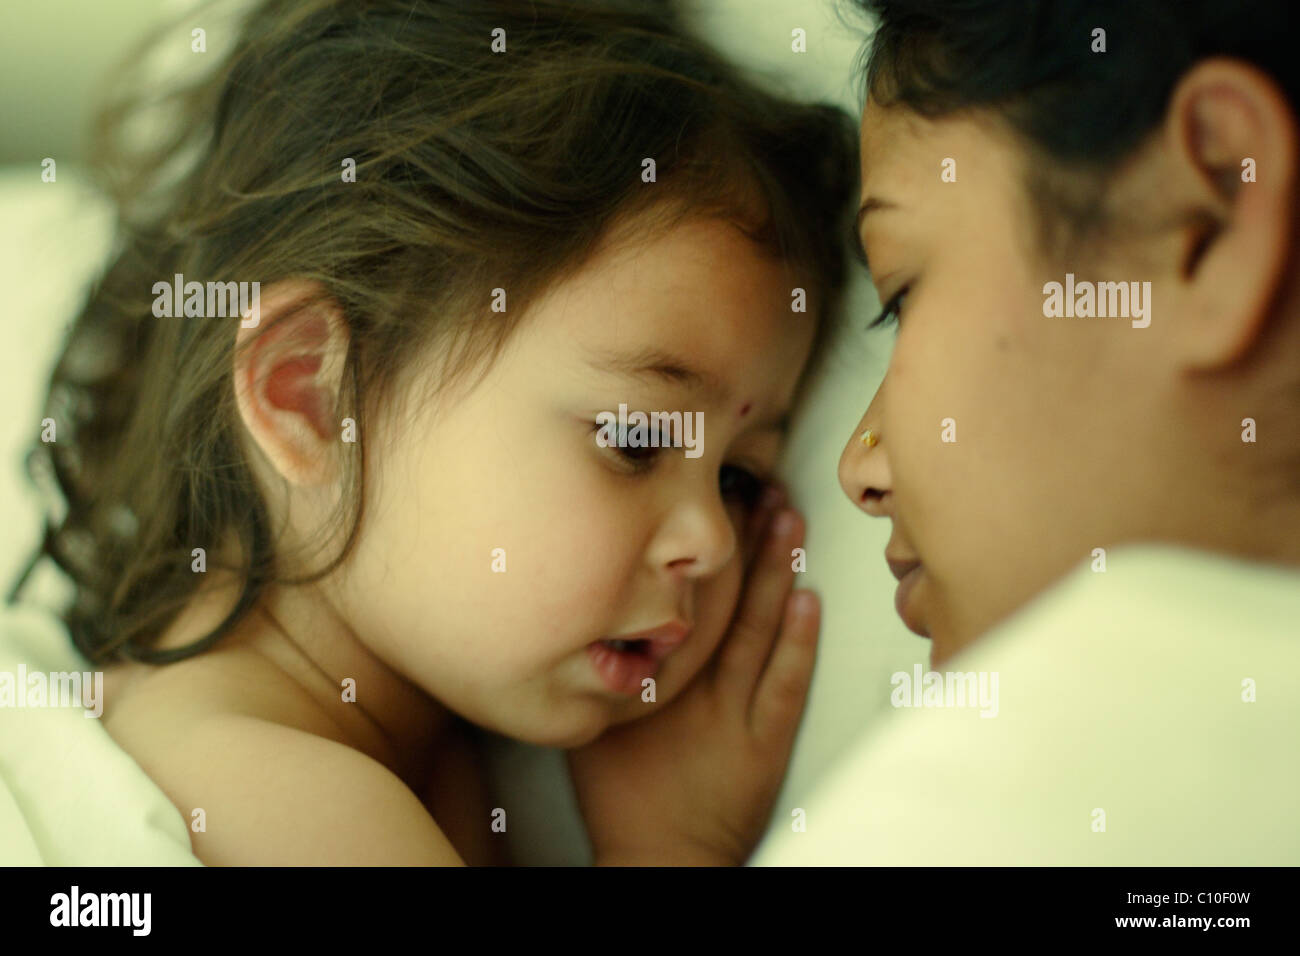 Mother and daughter. - Stock Image